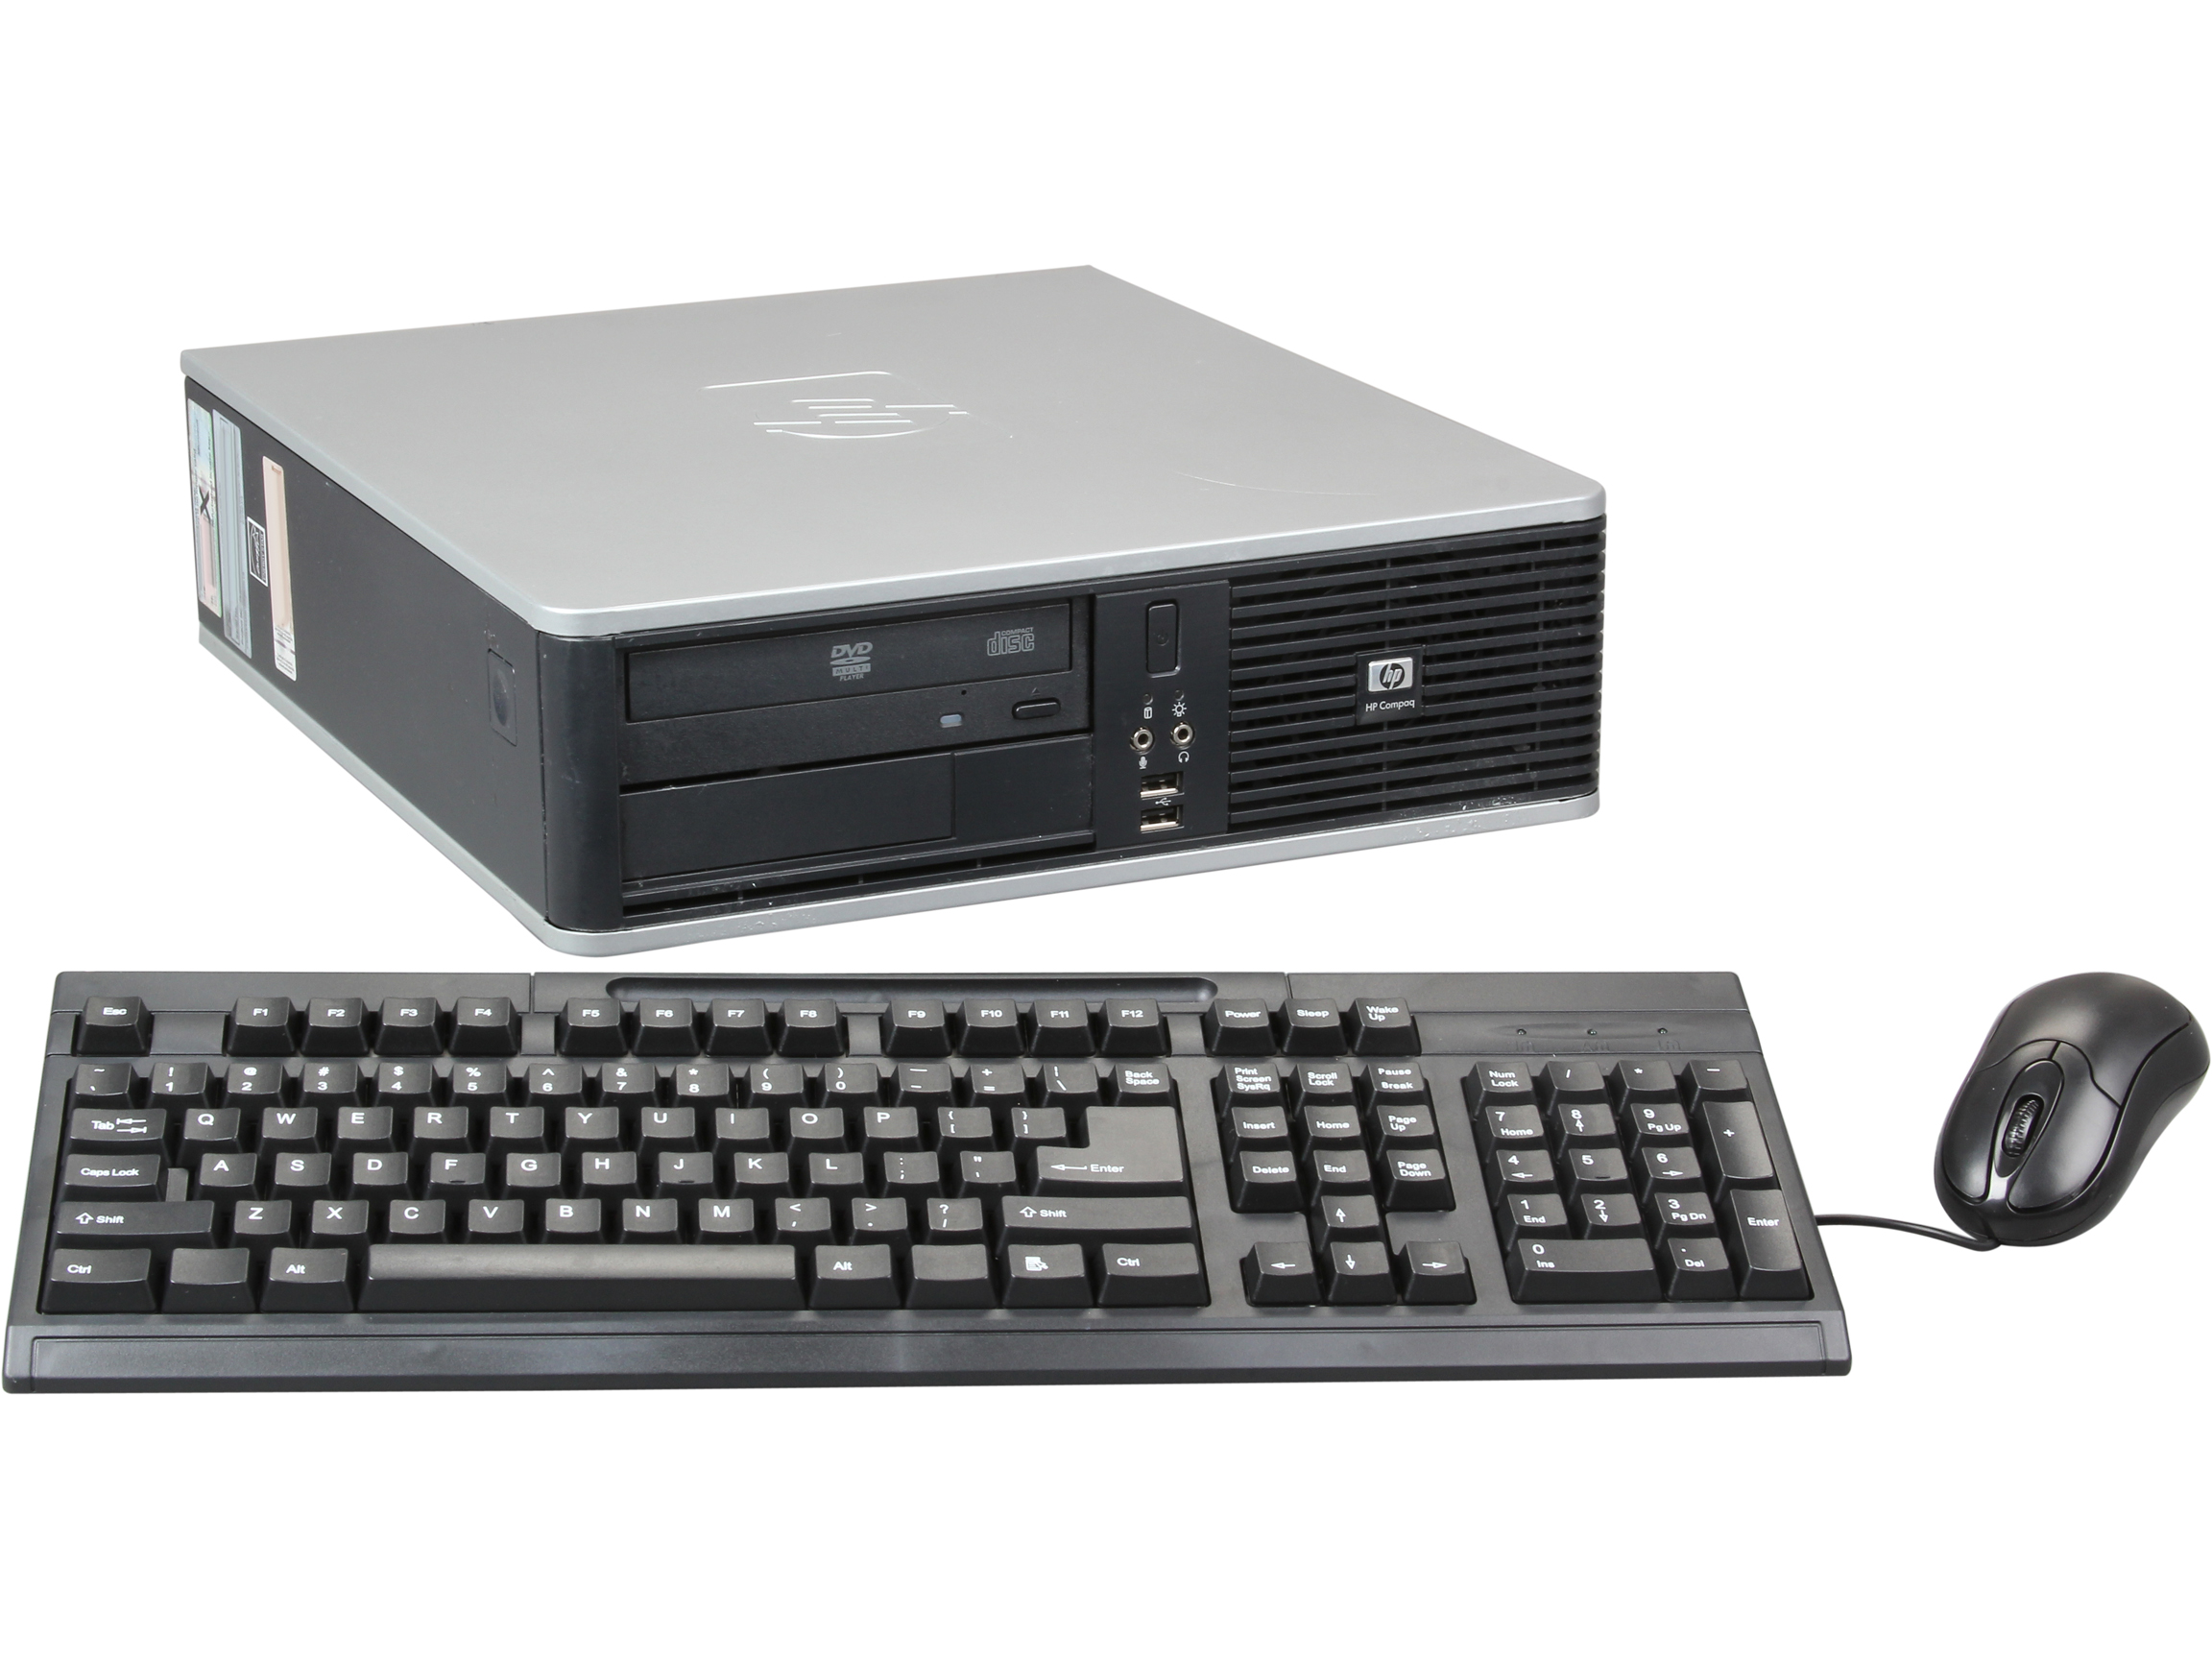 Refurbished: HP DC7900 Small Form Factor Desktop PC Intel Core 2 Duo 2.33Ghz 2GB DDR2 RAM 160GB HDD DVDROM Windows 7 Home Premium